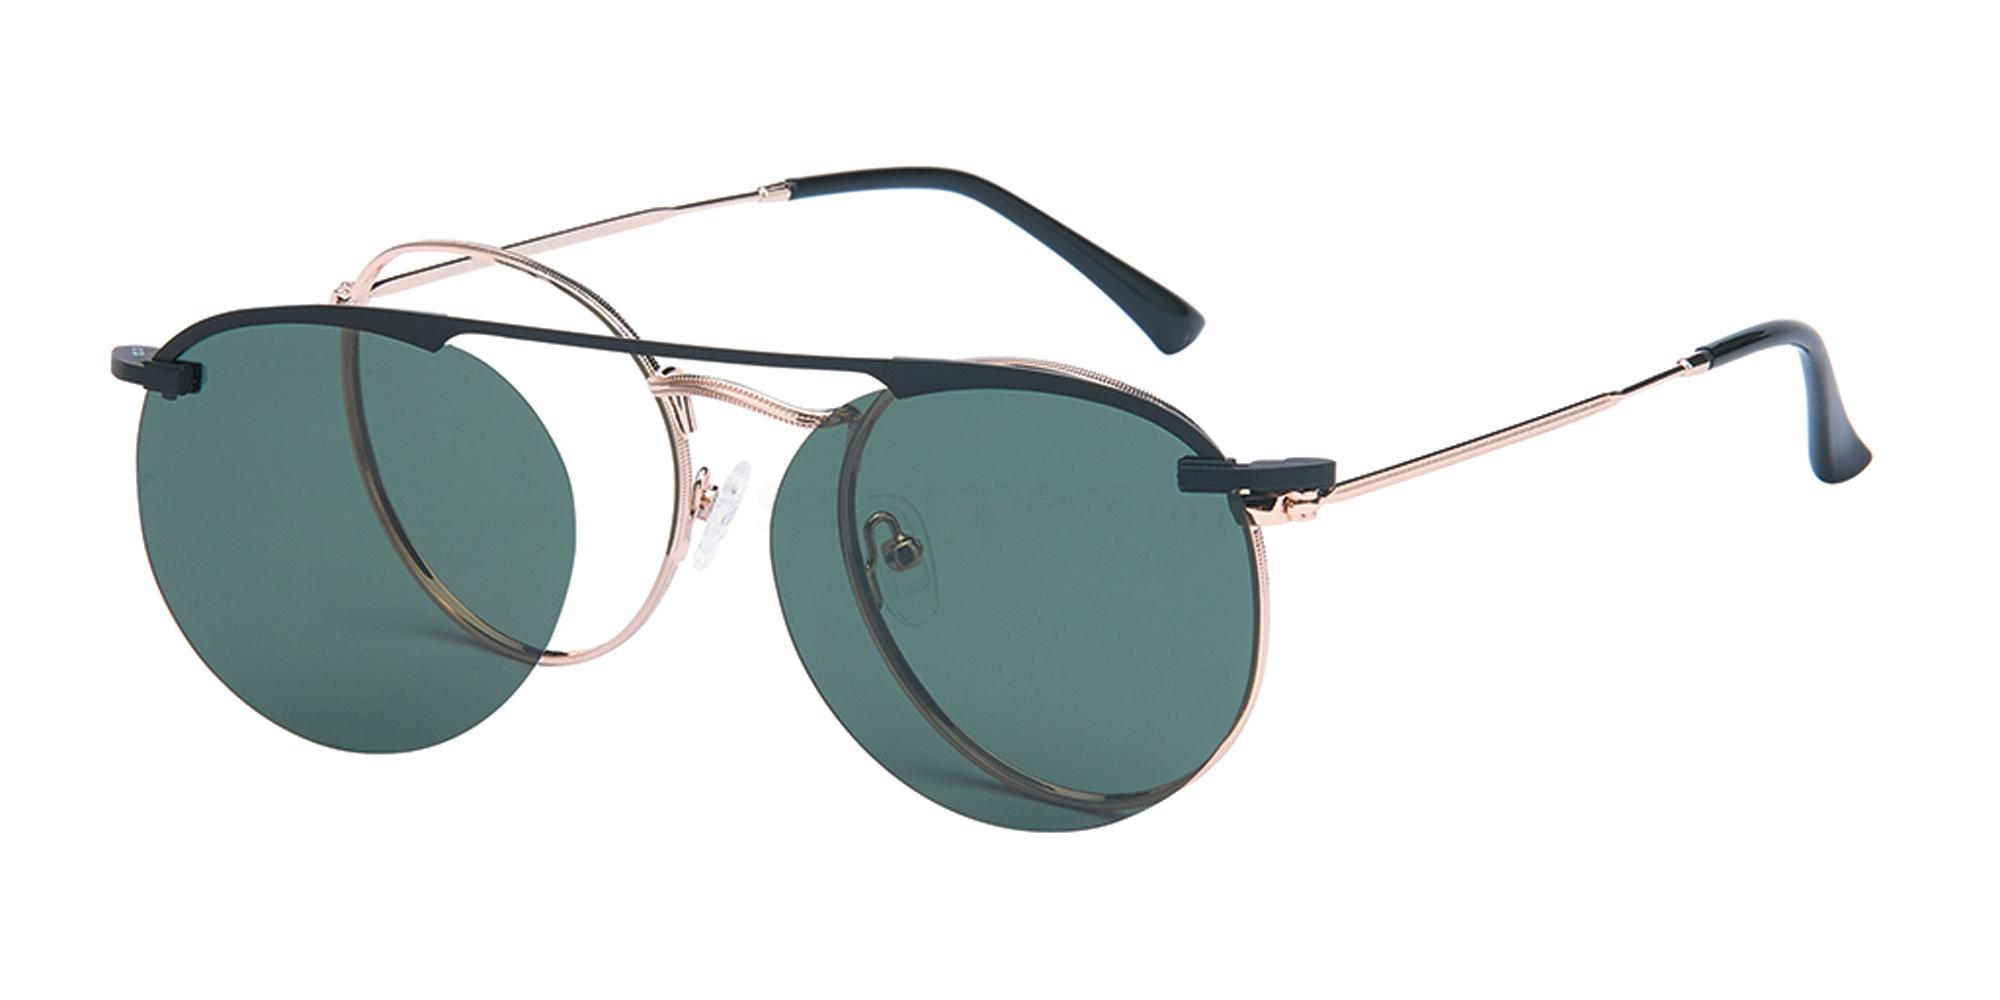 C1 LC122 - with Clip On Glasses, London Club